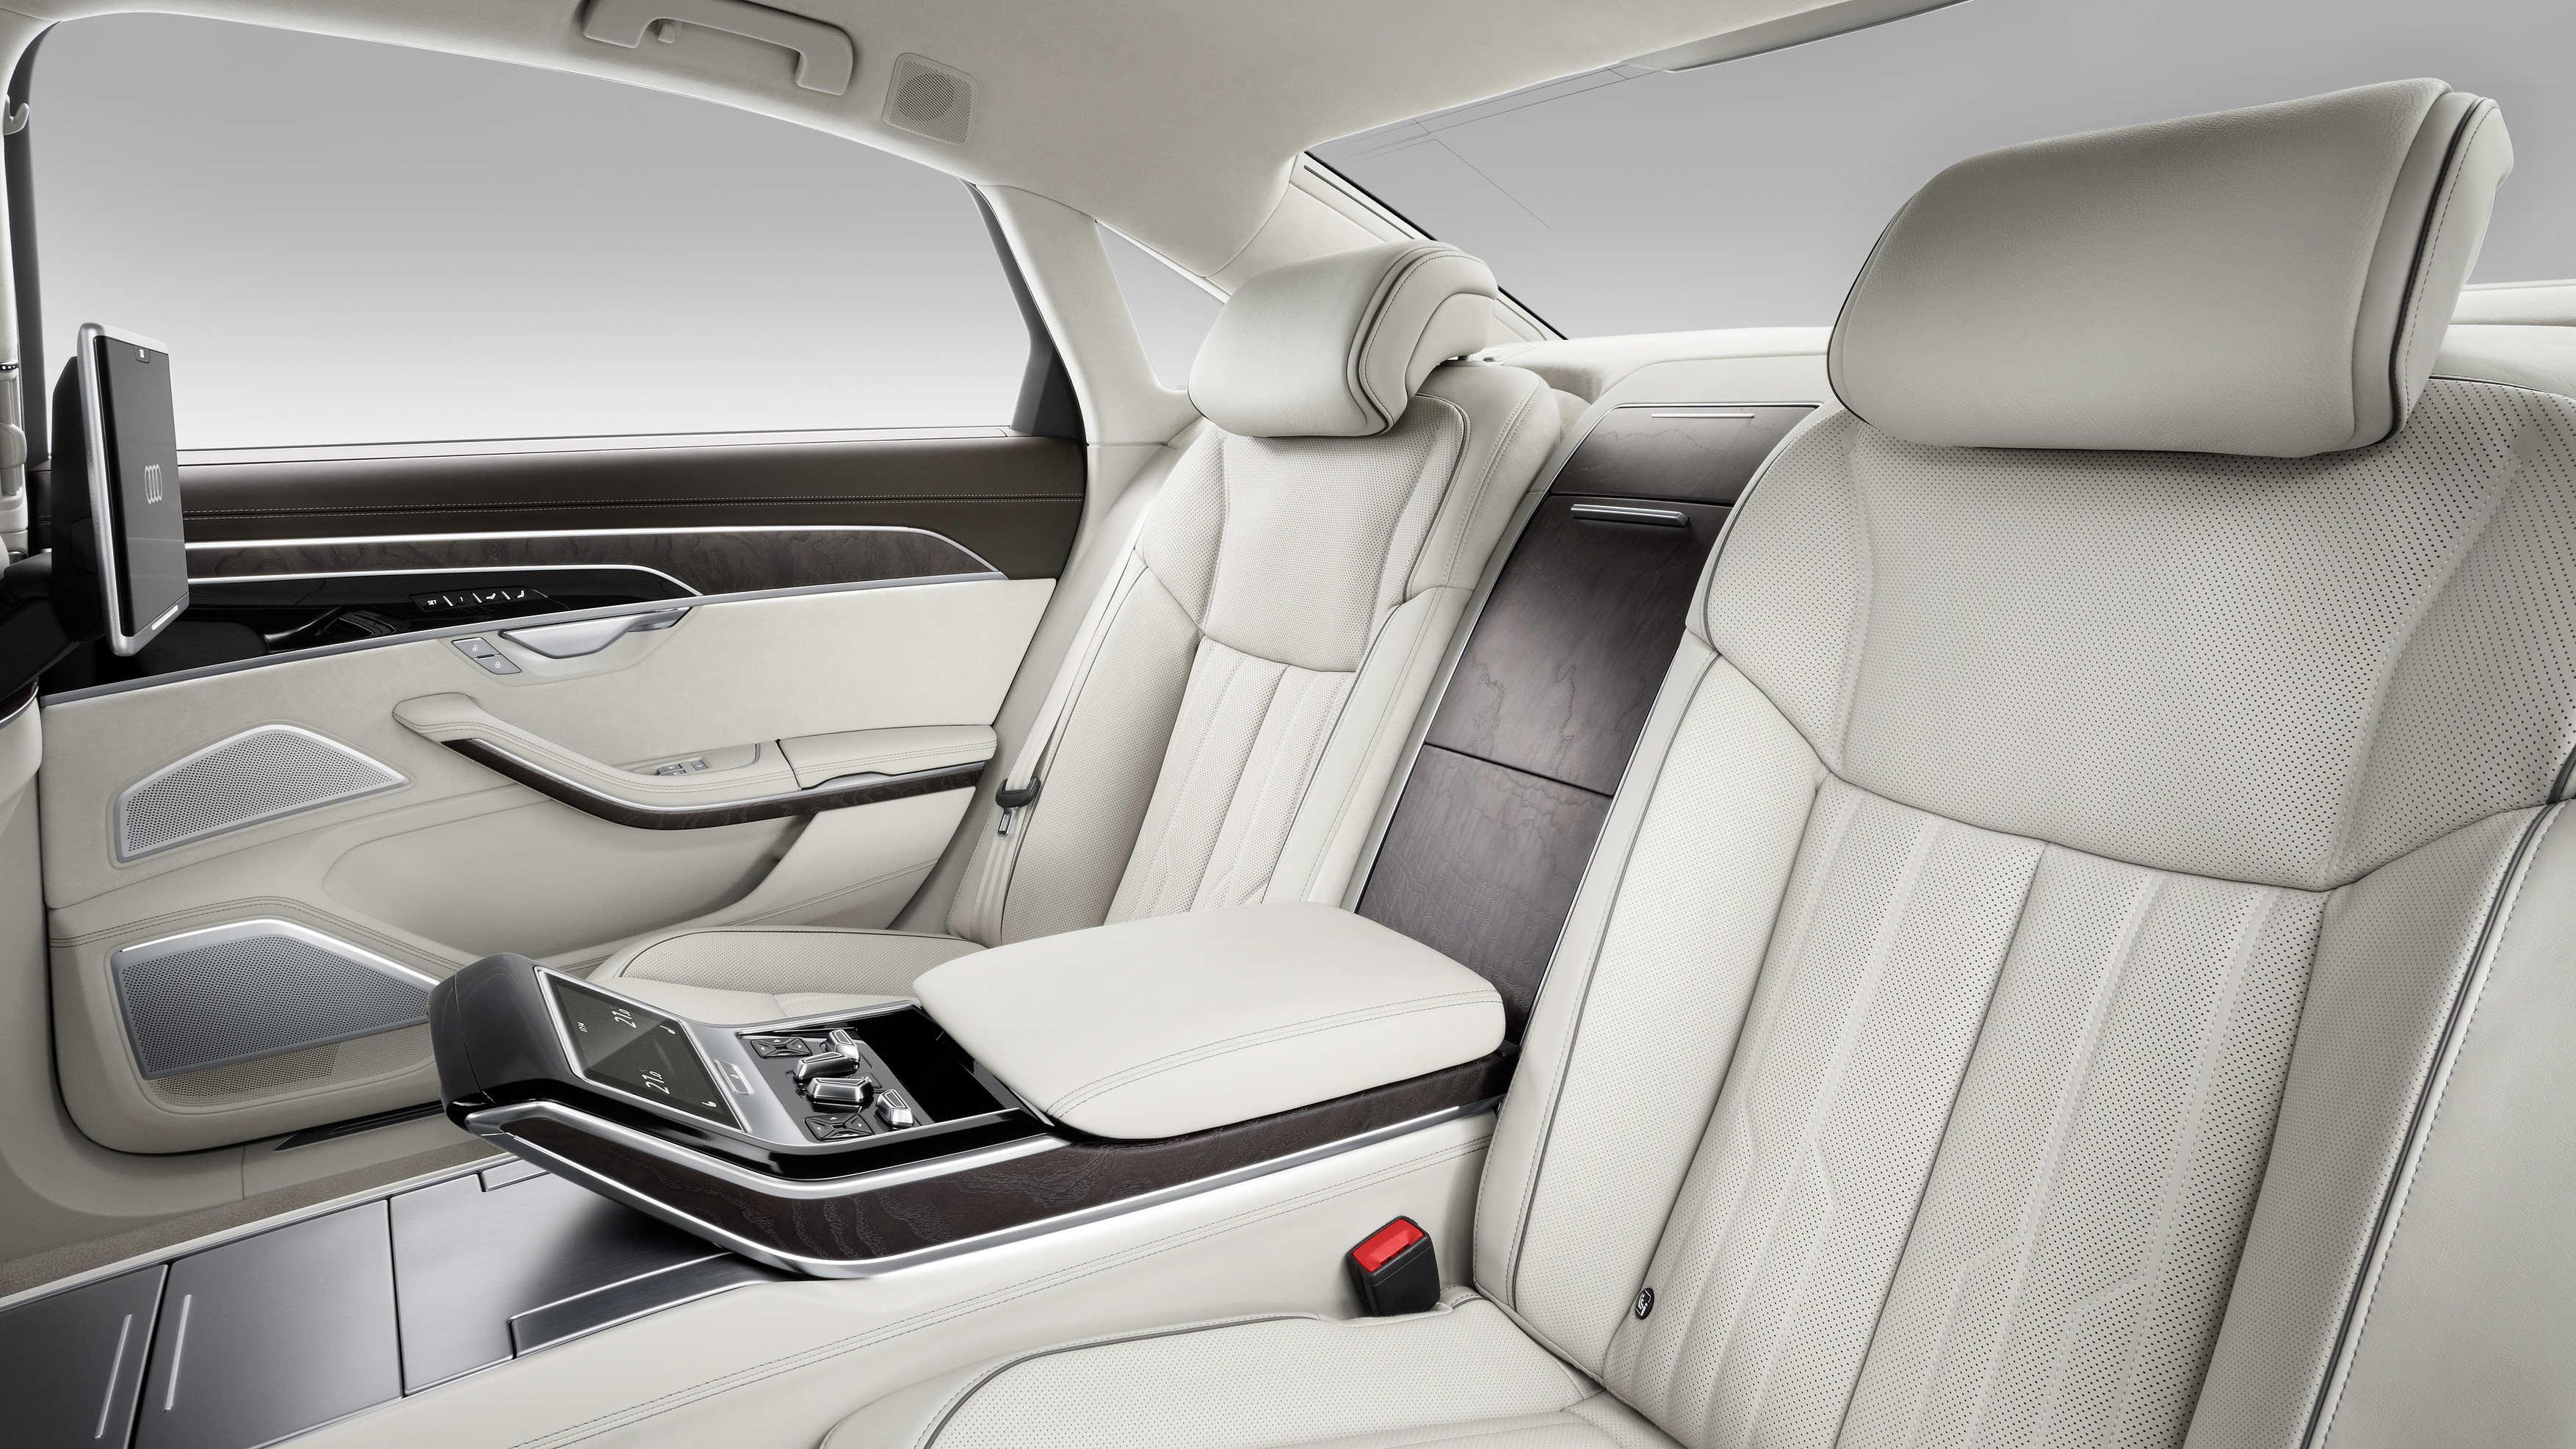 Is The New Audi A8 The Most Technologically Advanced Car Yet? A178313 medium